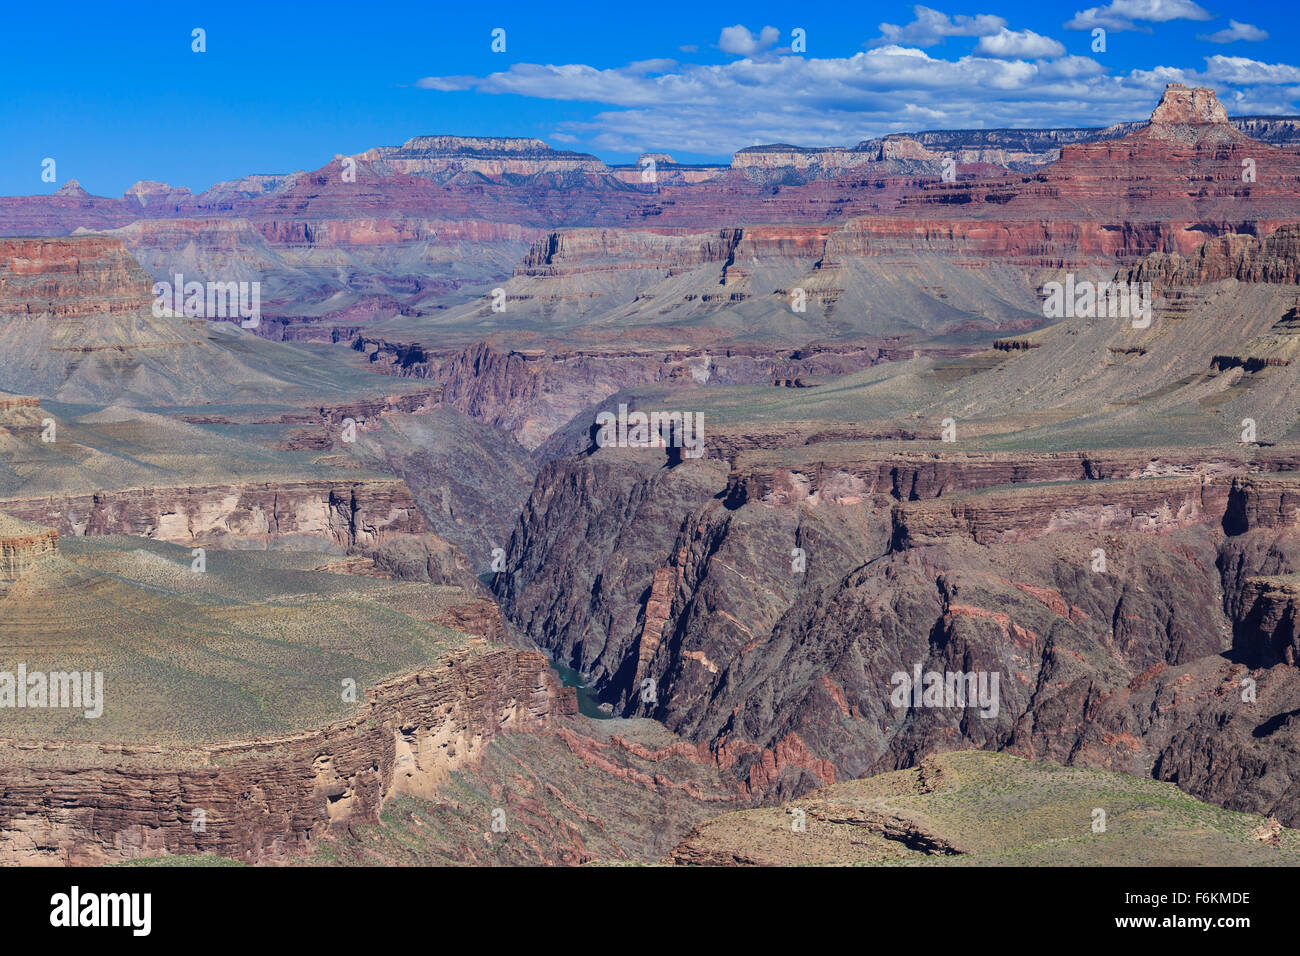 upper granite gorge viewed from horseshoe mesa in grand canyon national park, arizona - Stock Image